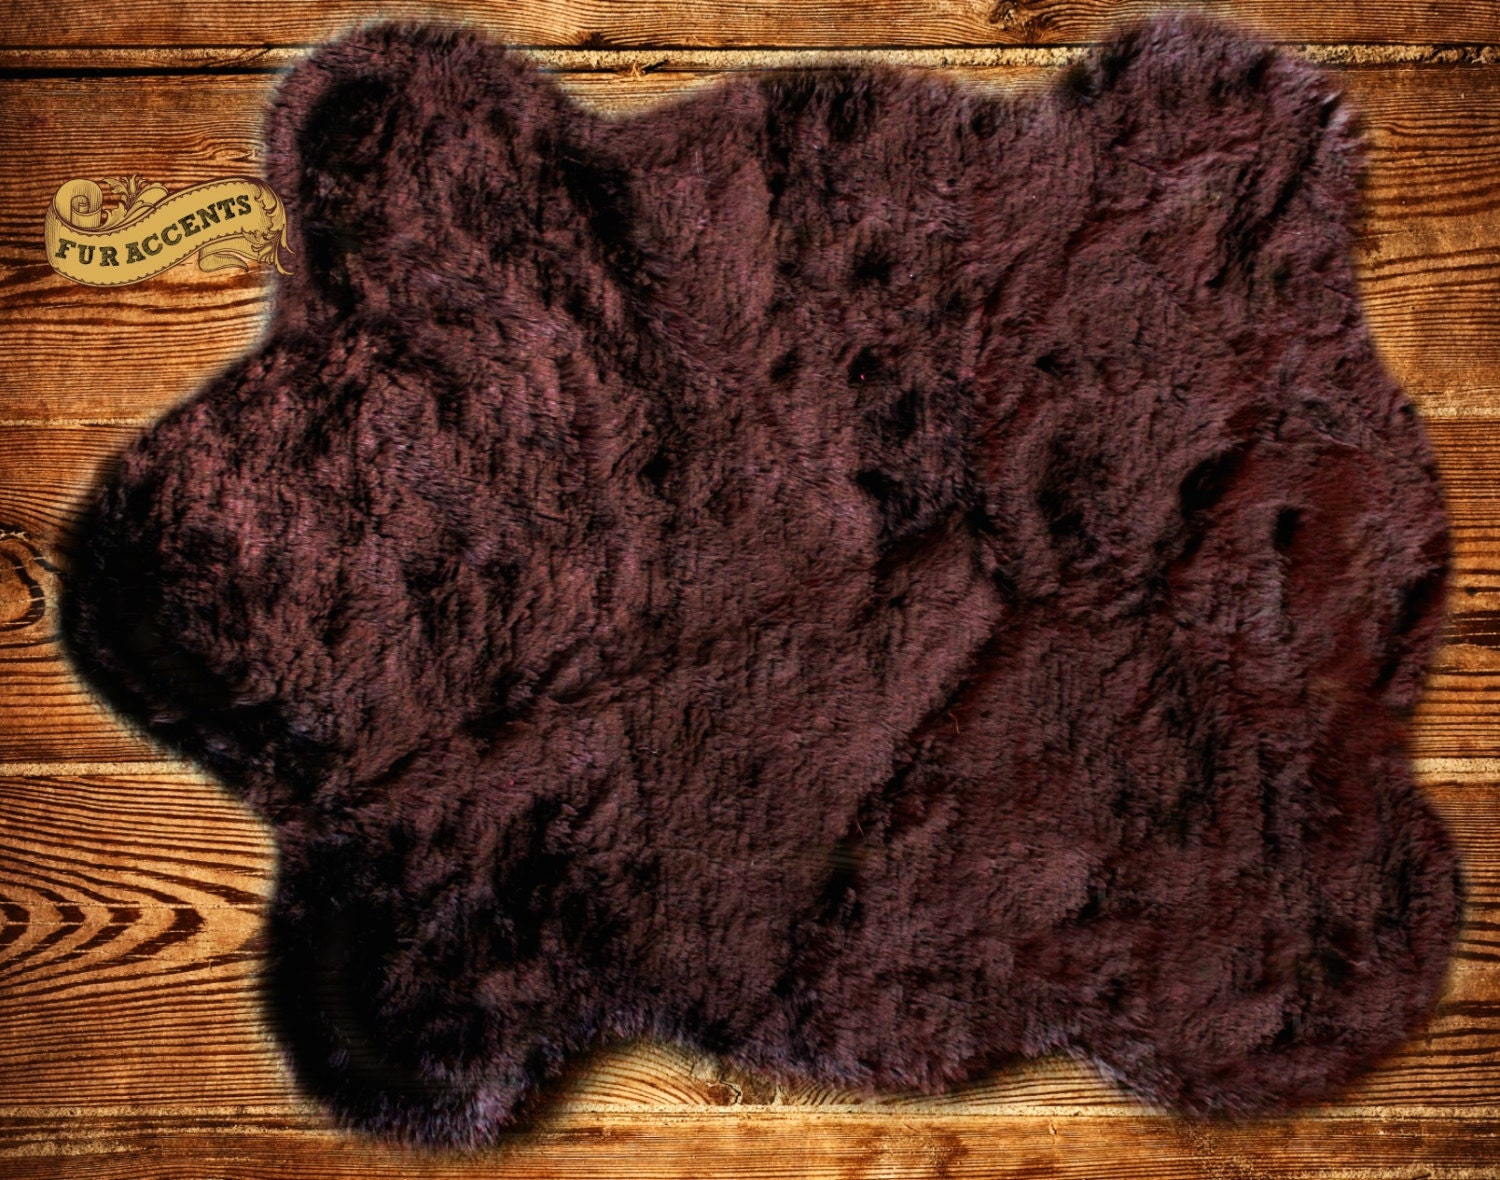 fur accents faux fur bear skin pelt rug accent by furaccents. Black Bedroom Furniture Sets. Home Design Ideas